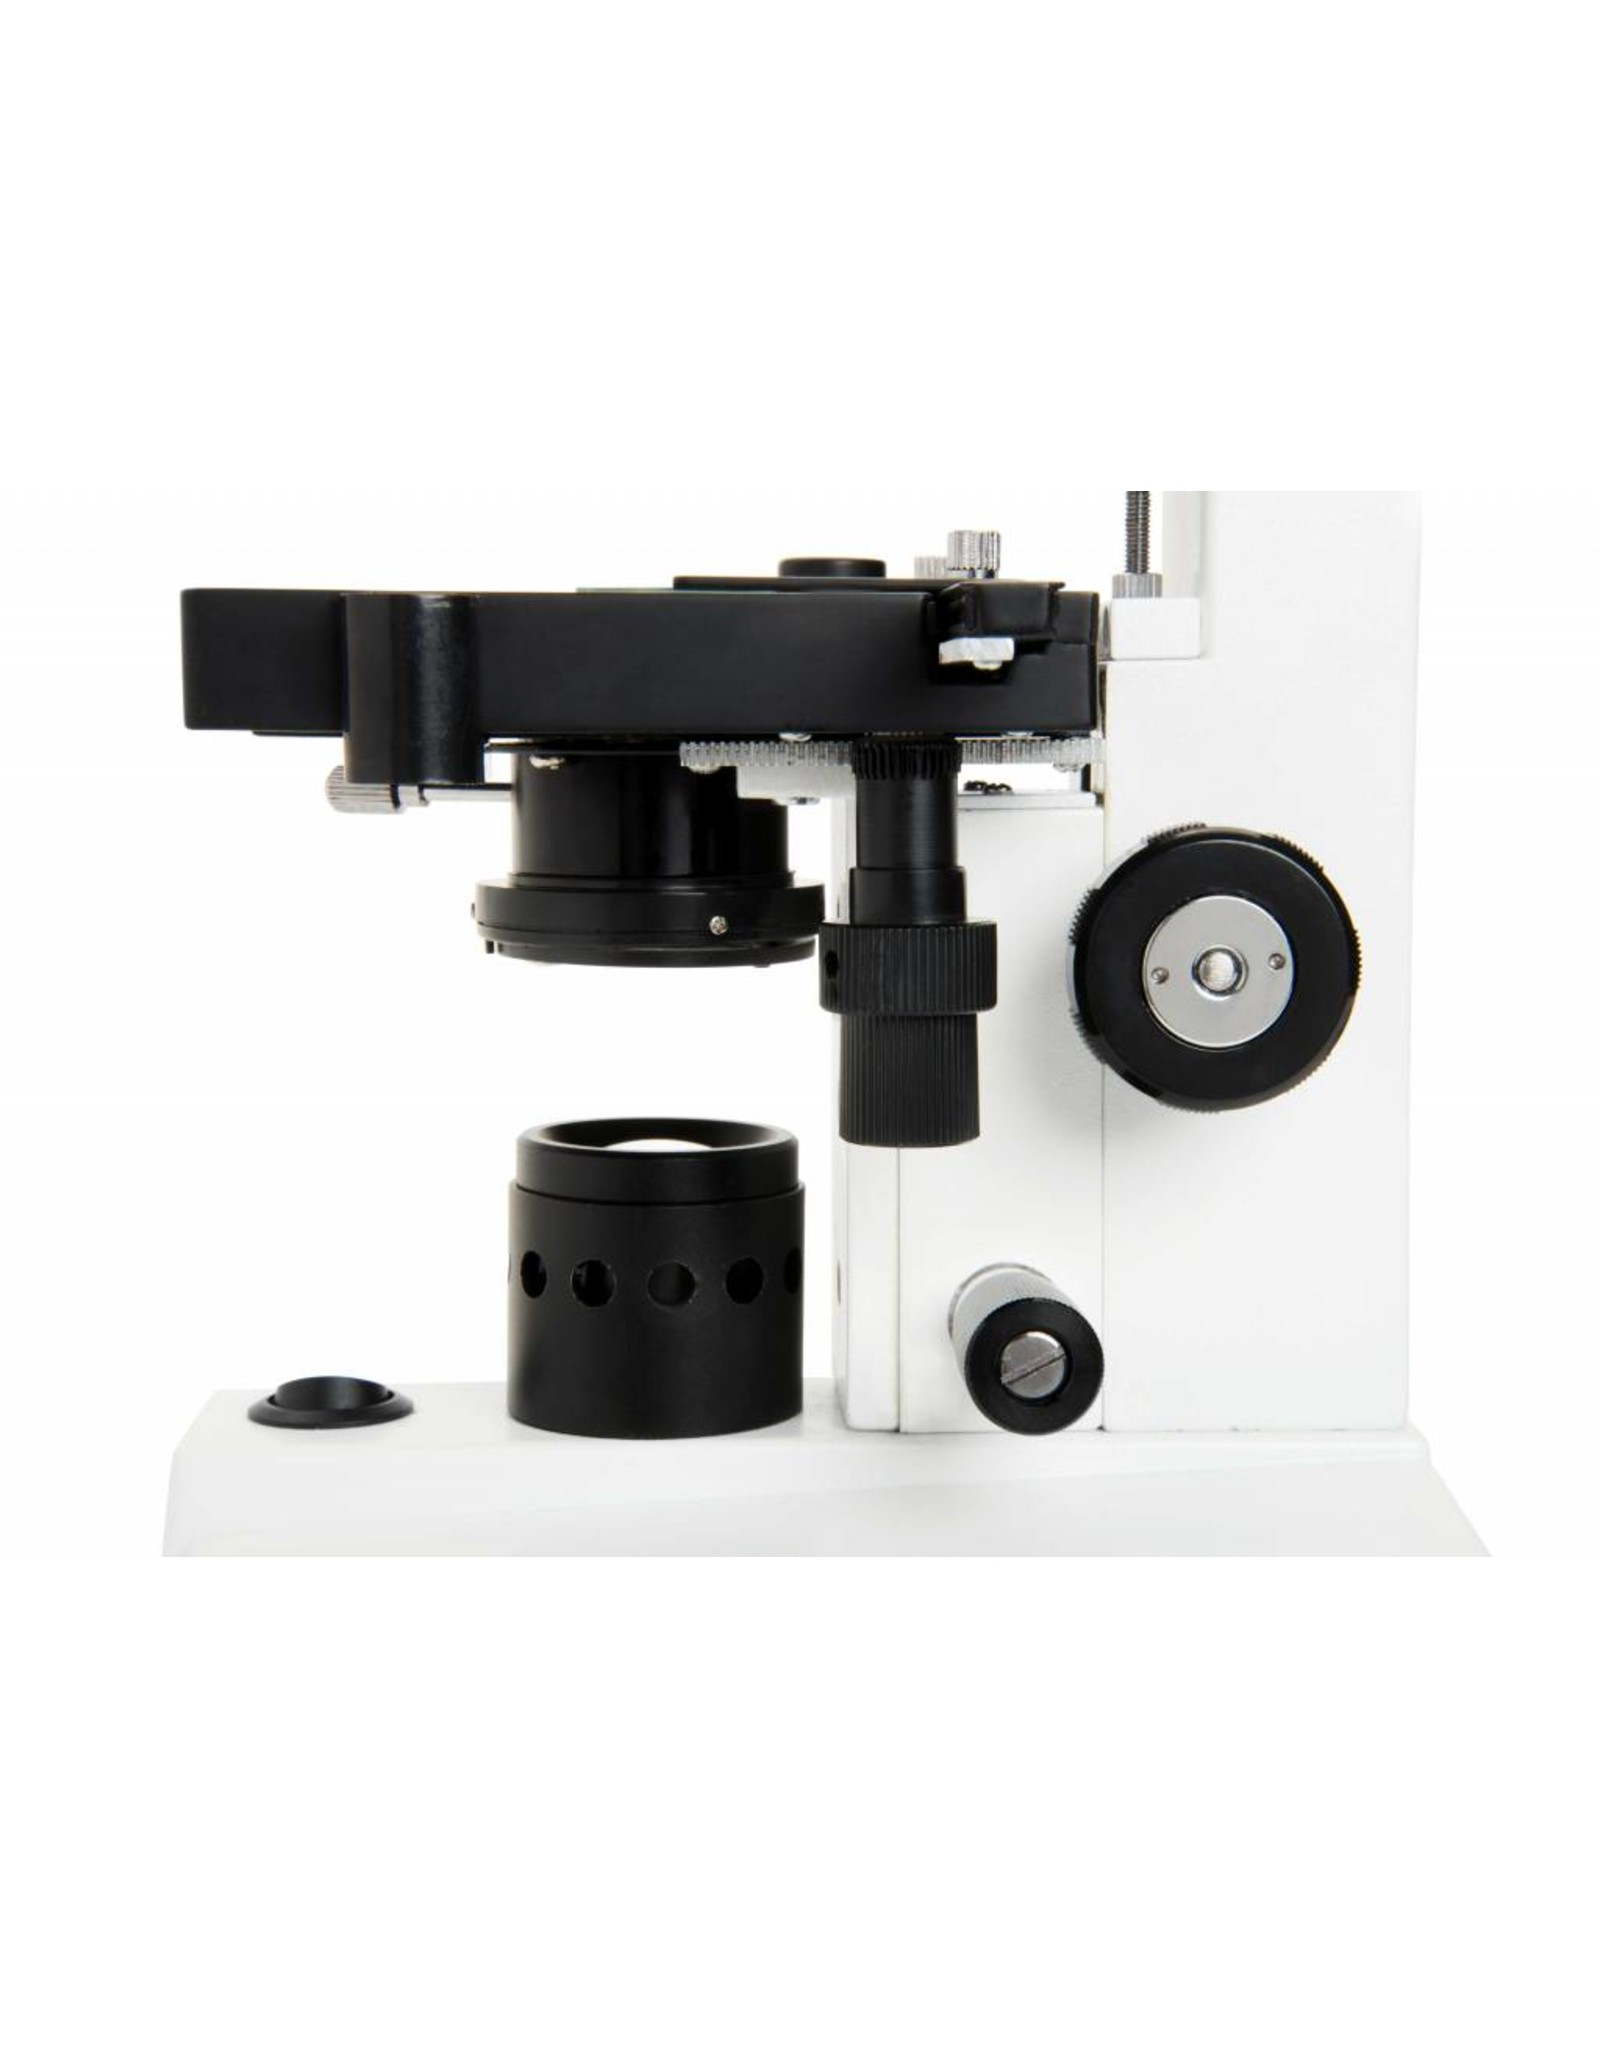 Celestron Celestron Labs CB2000CF Compound Microscope